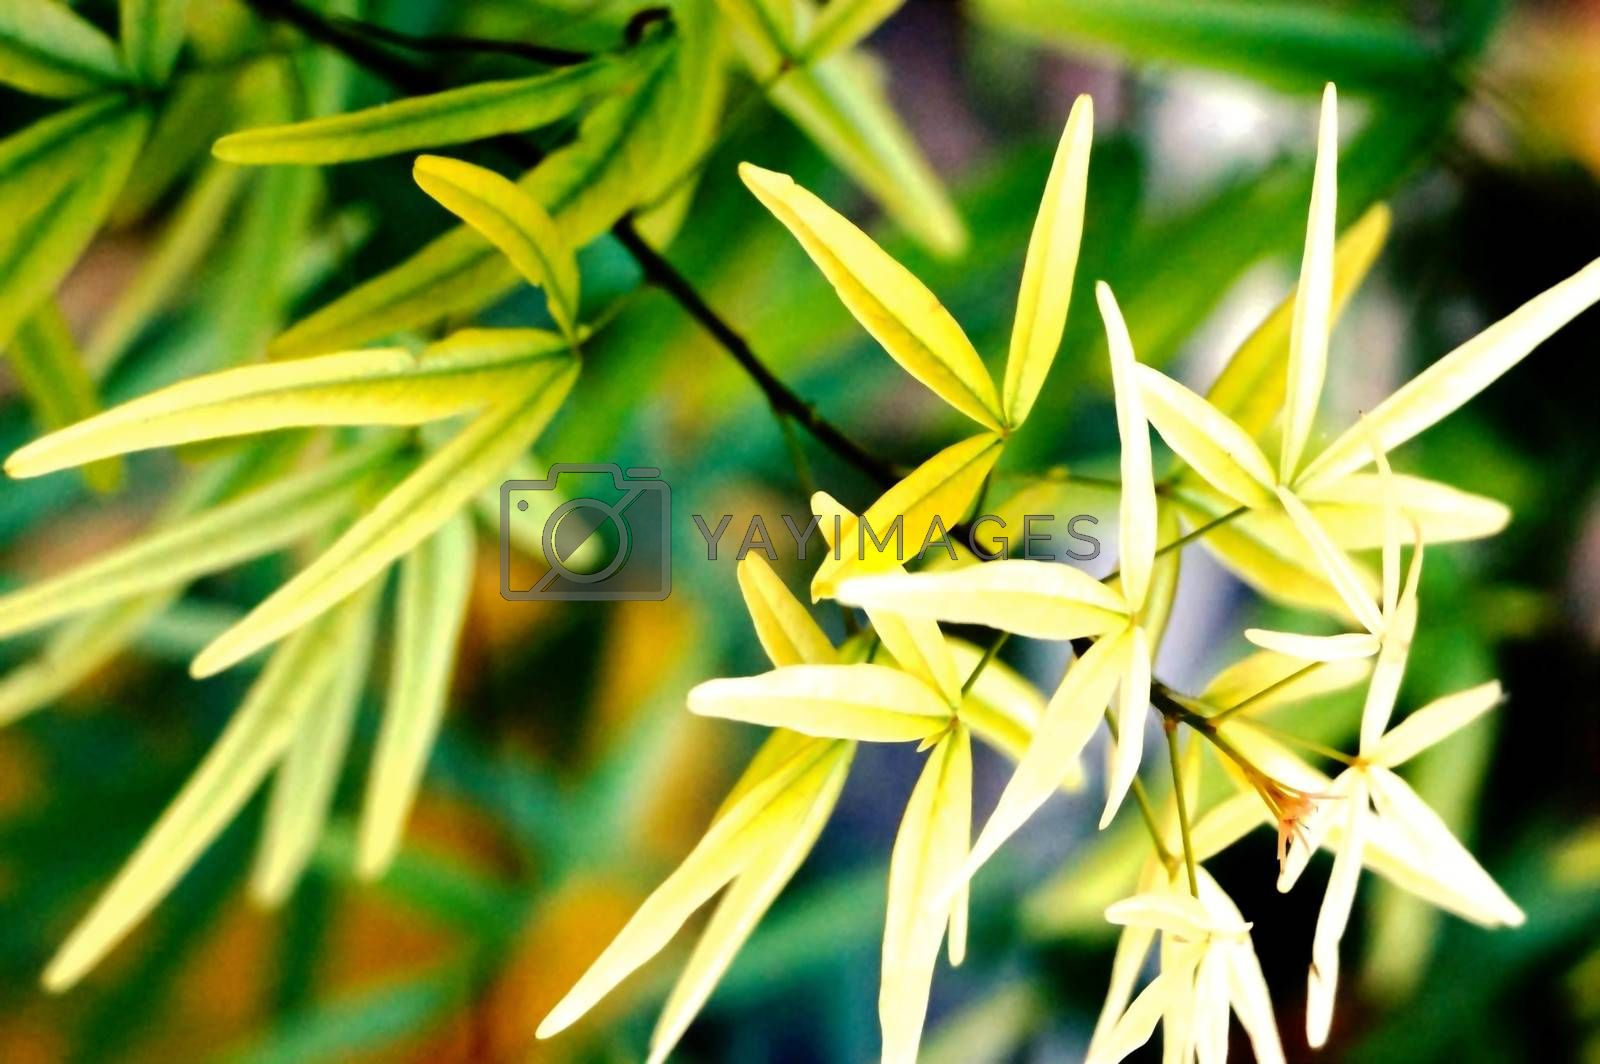 Royalty free image of tree fingers leaves by nattapatt